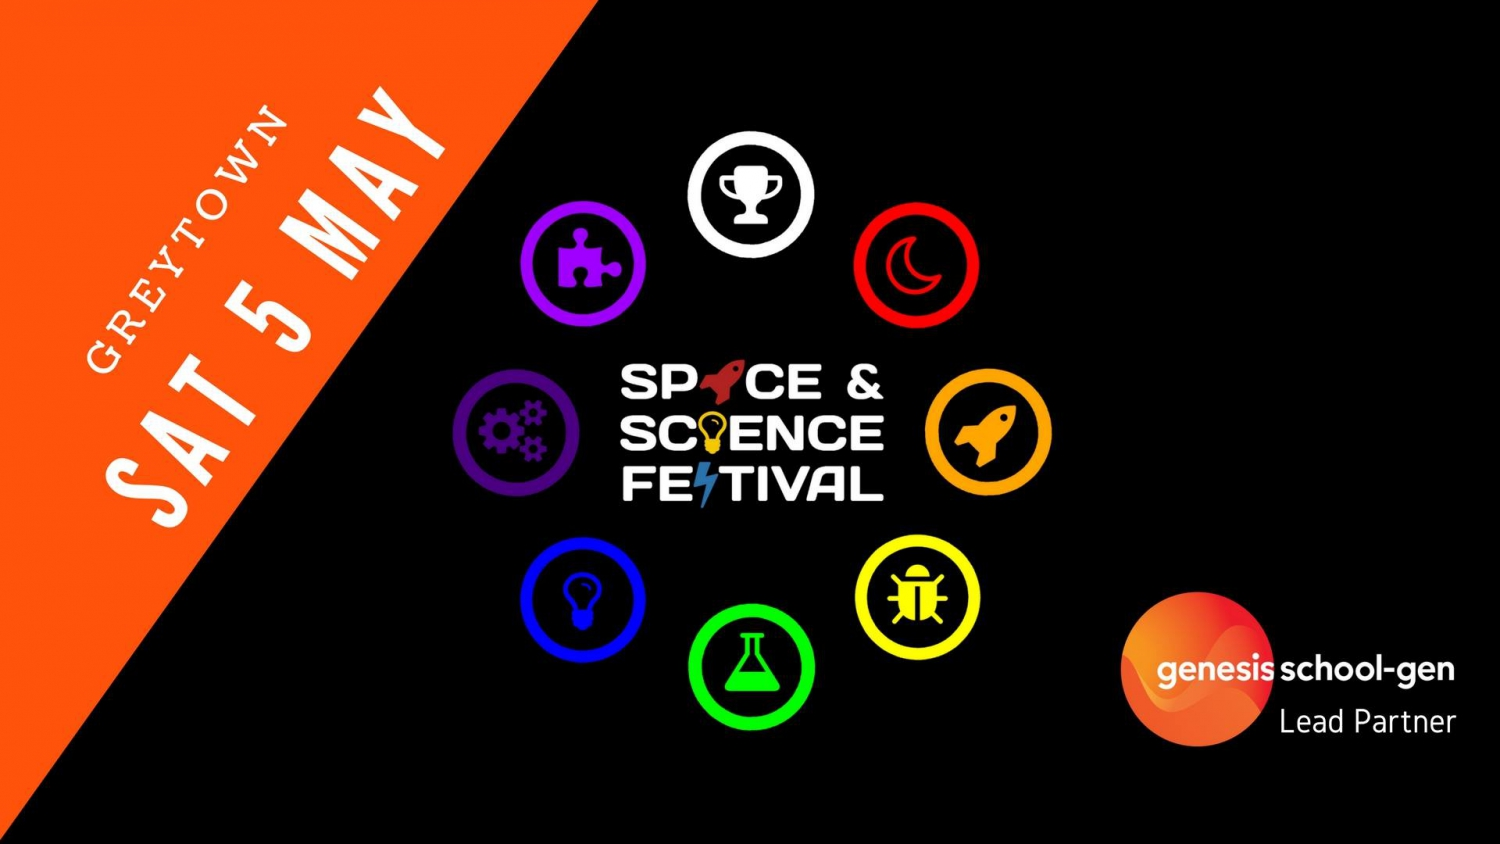 Space & Science Festival @Greytown